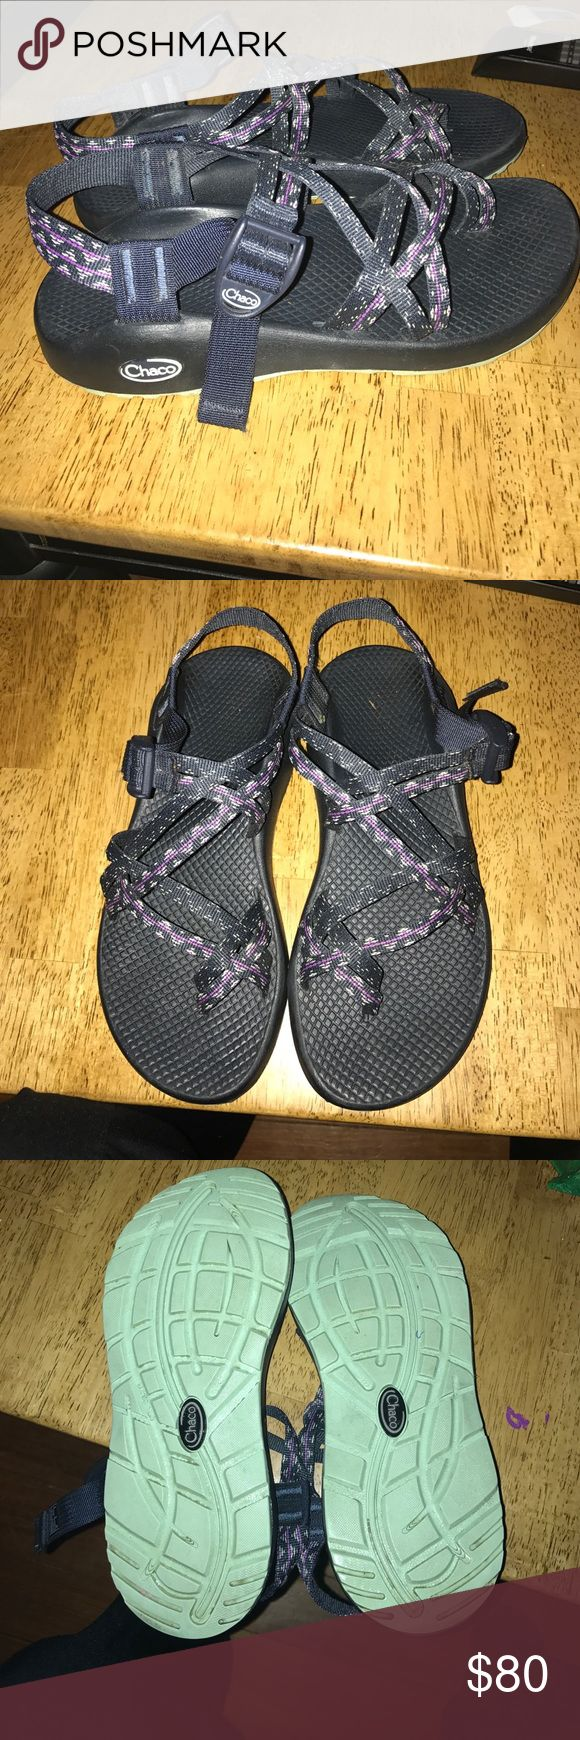 Chacos Great shape, only worn a couple of times. Willing to trade for birkenstocks (37-30) or a size 7 pair of chacos Chaco Shoes Sandals